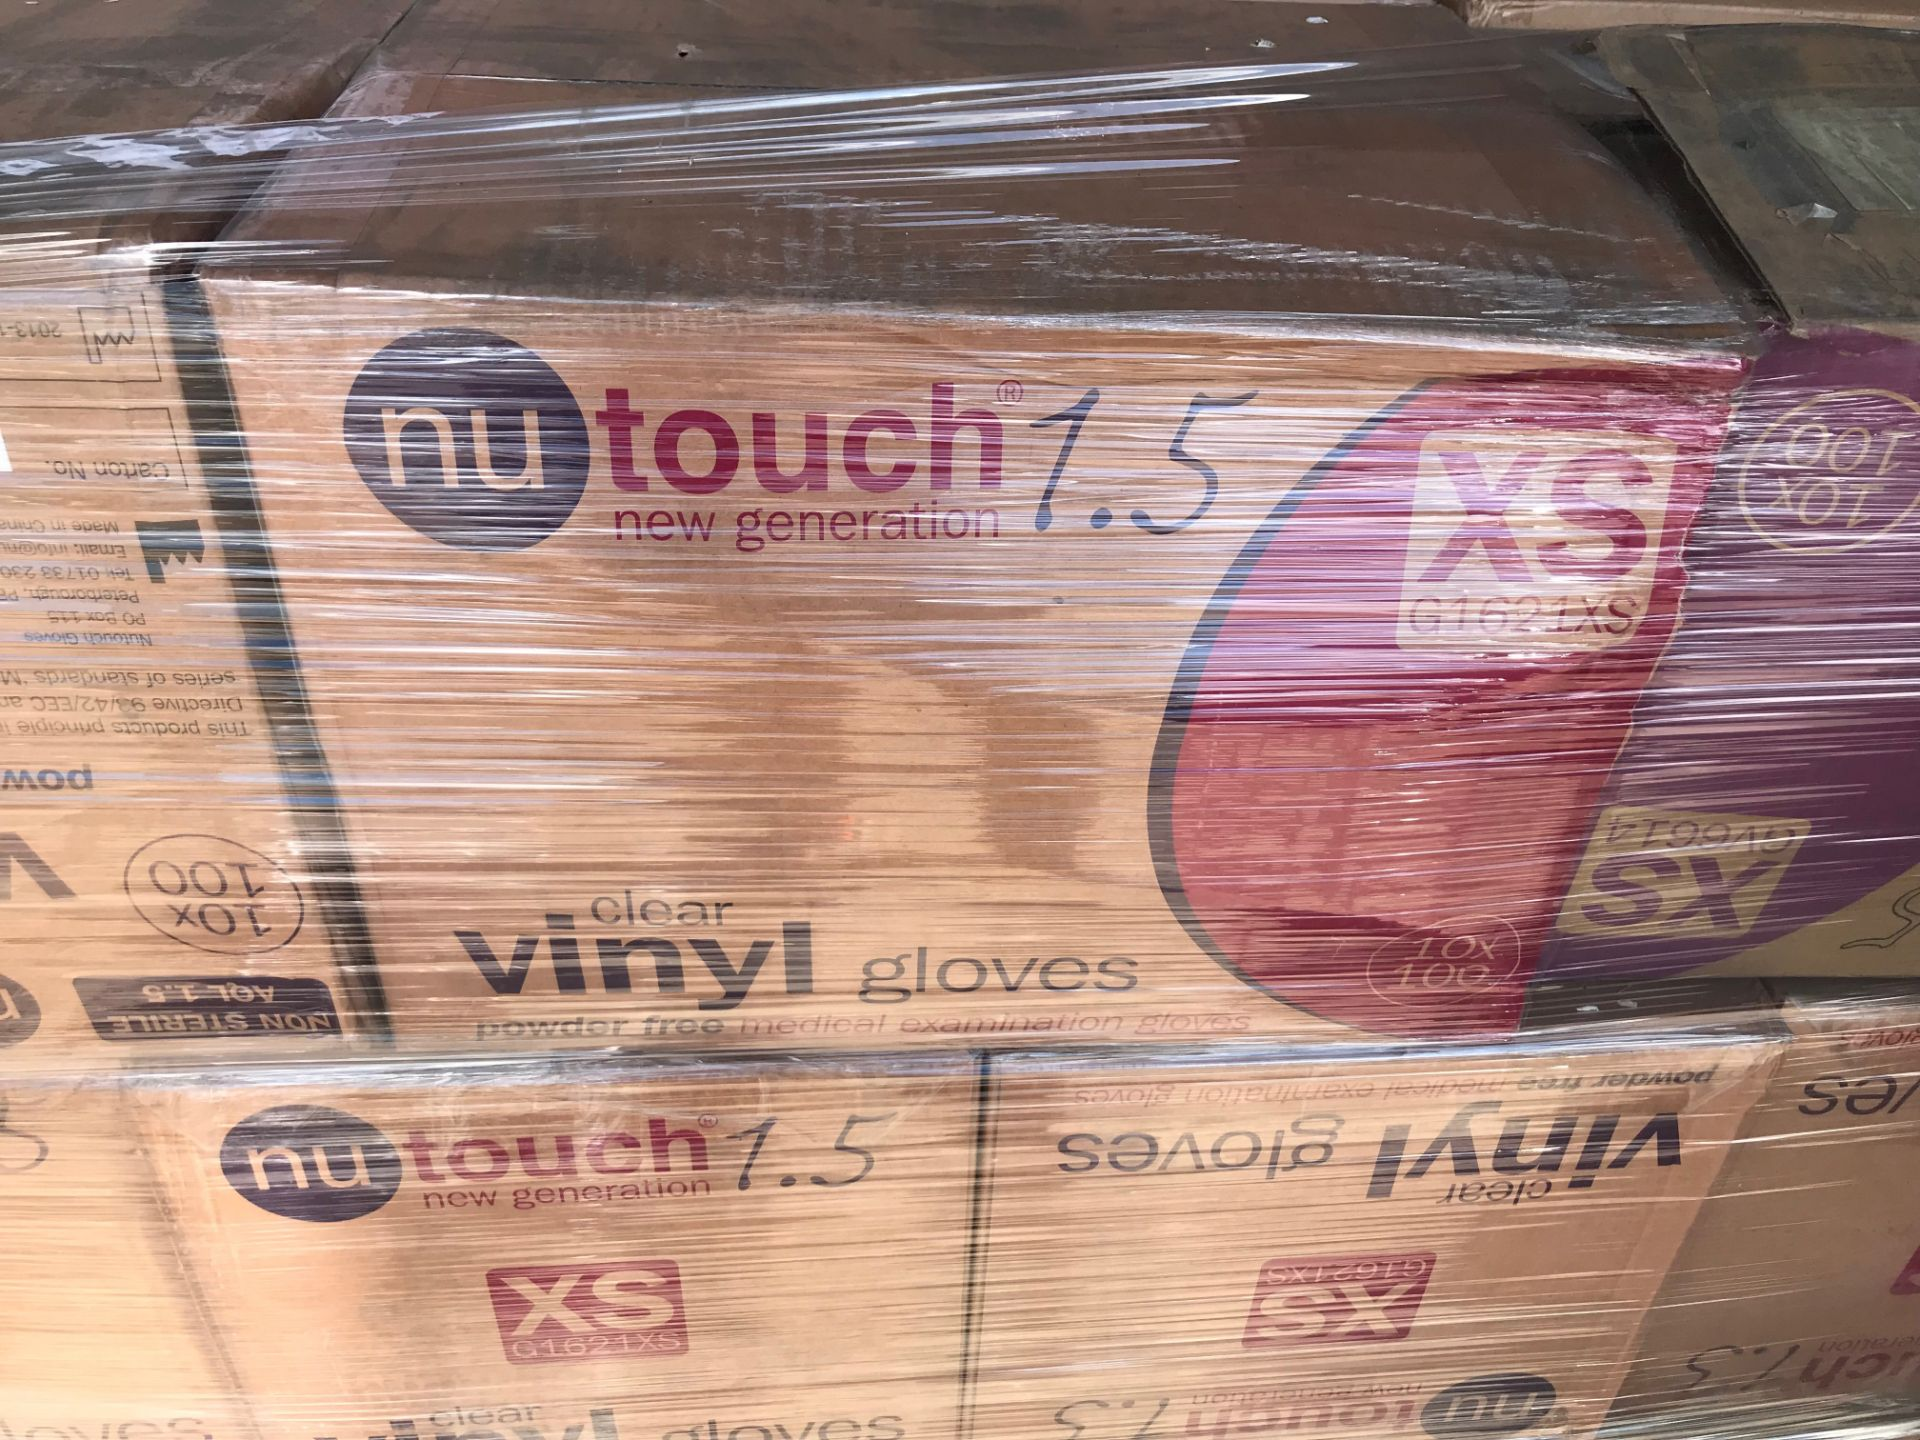 Lot 23 - CLEAR VINYL GLOVES (POWDER FREE) X SMALL 56 CASES ON PALLET